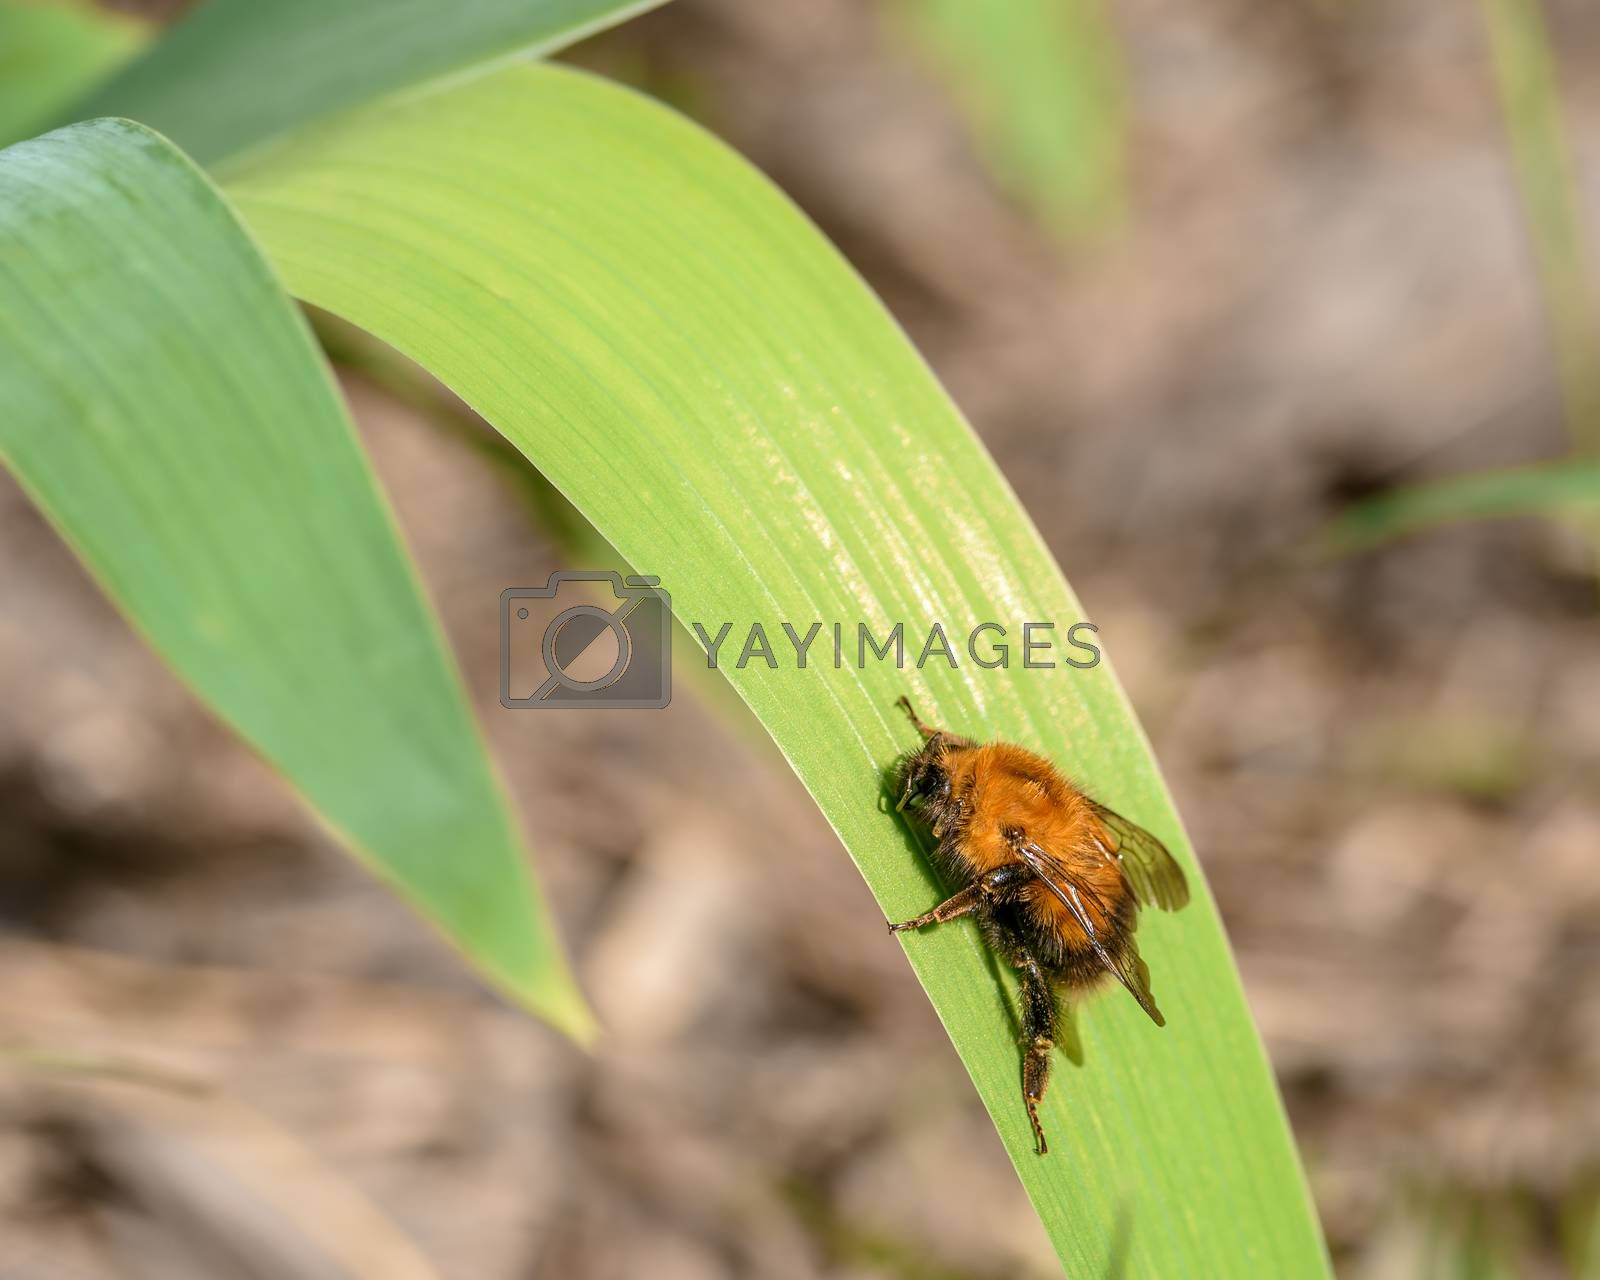 Fluffy orange fly sitting on a green blade of grass, close-up